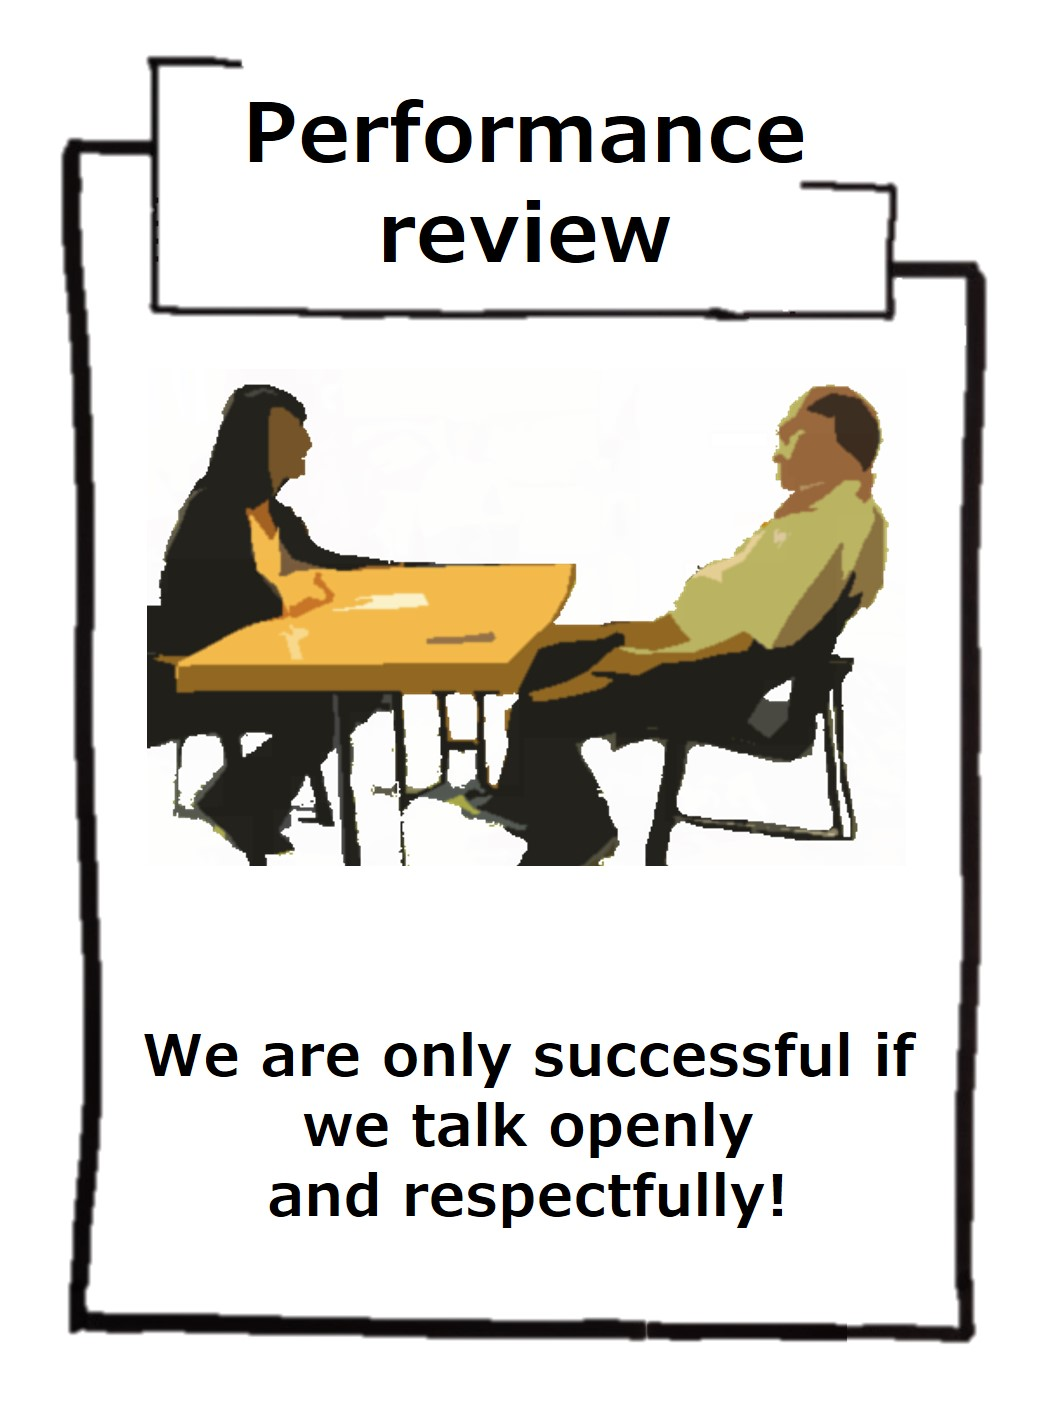 Performance reviews are only successful if we treat one another with appreciation and respect